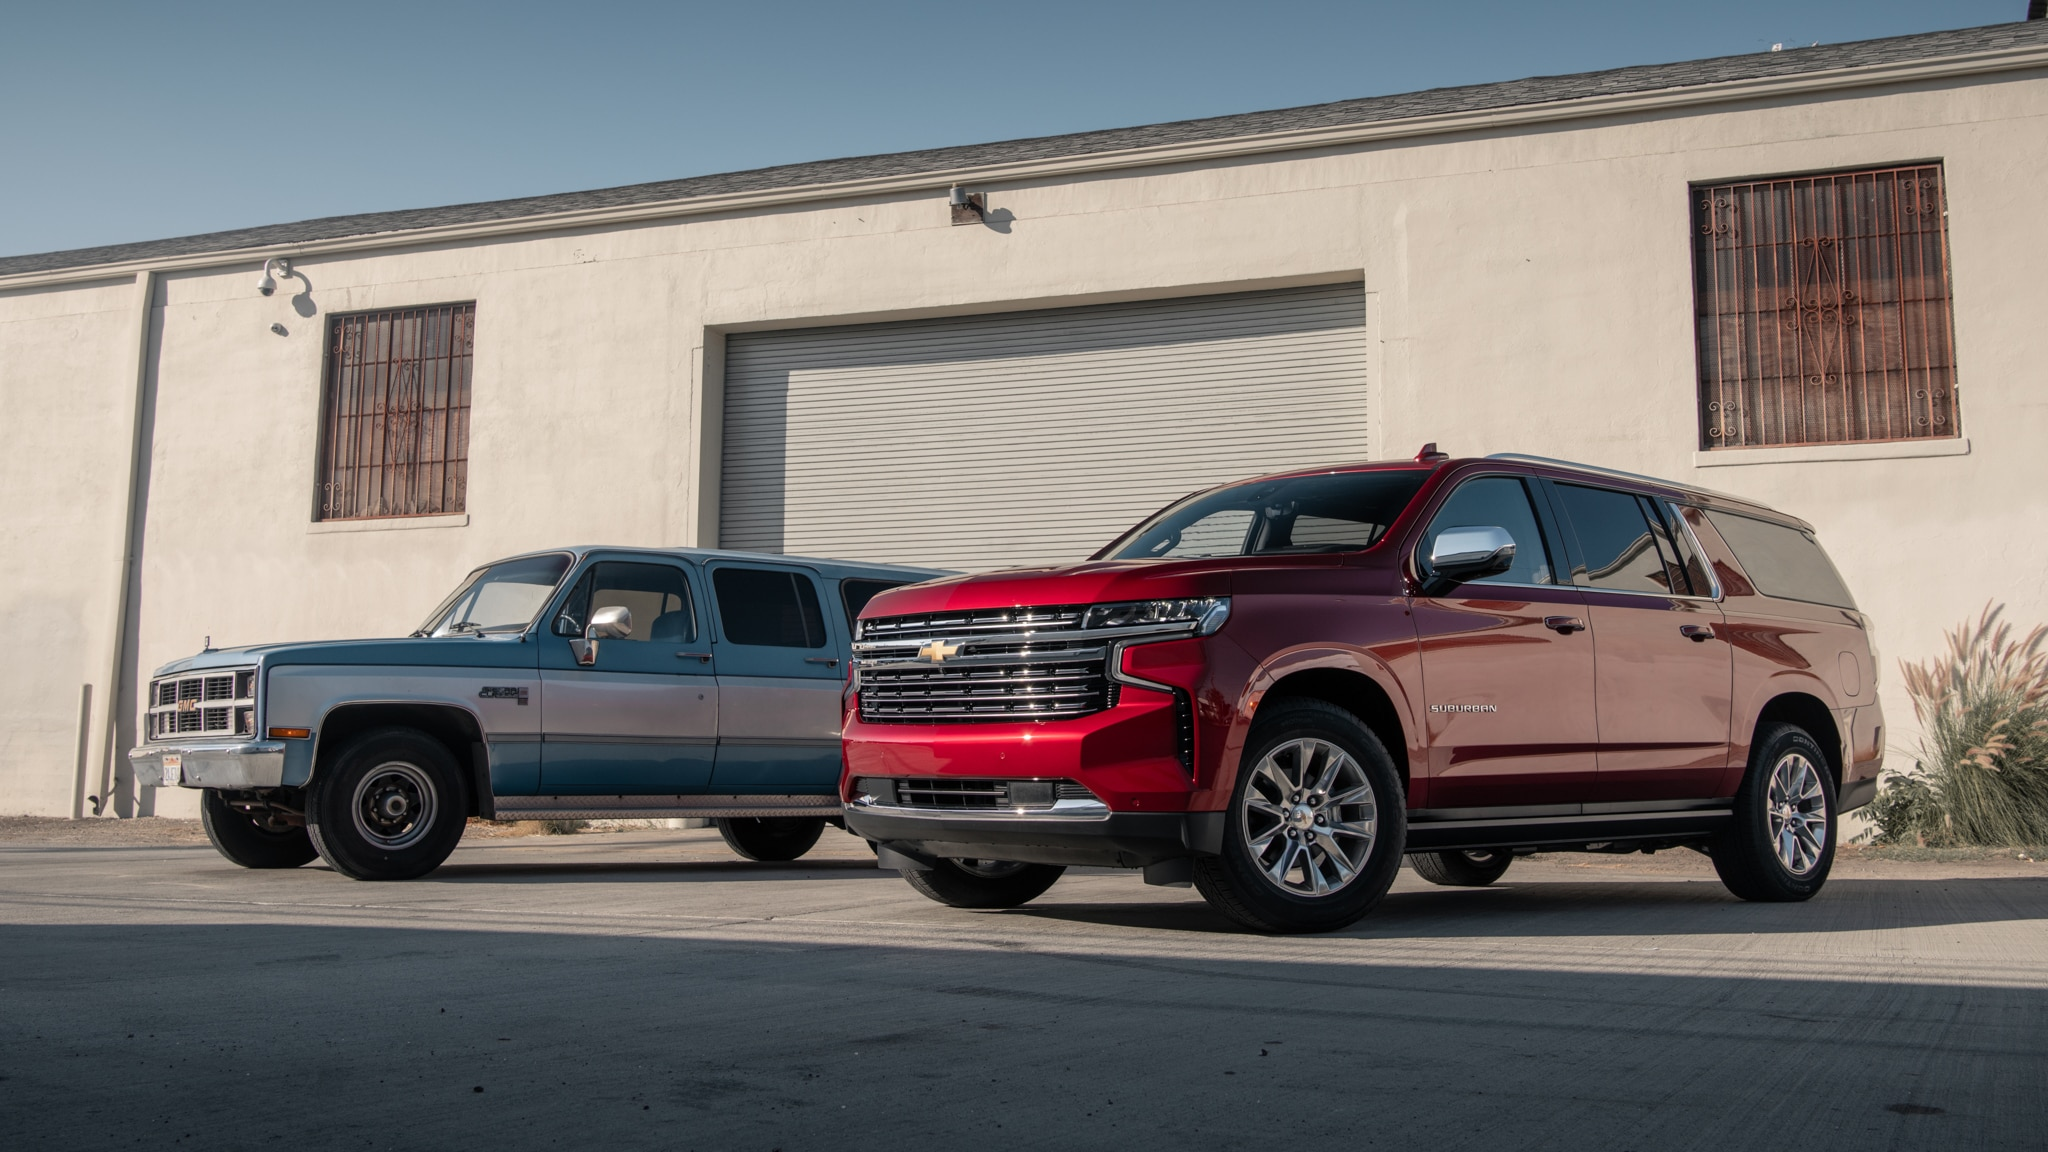 Driving The Diesel Powered 2021 Chevrolet Suburban The One To Buy